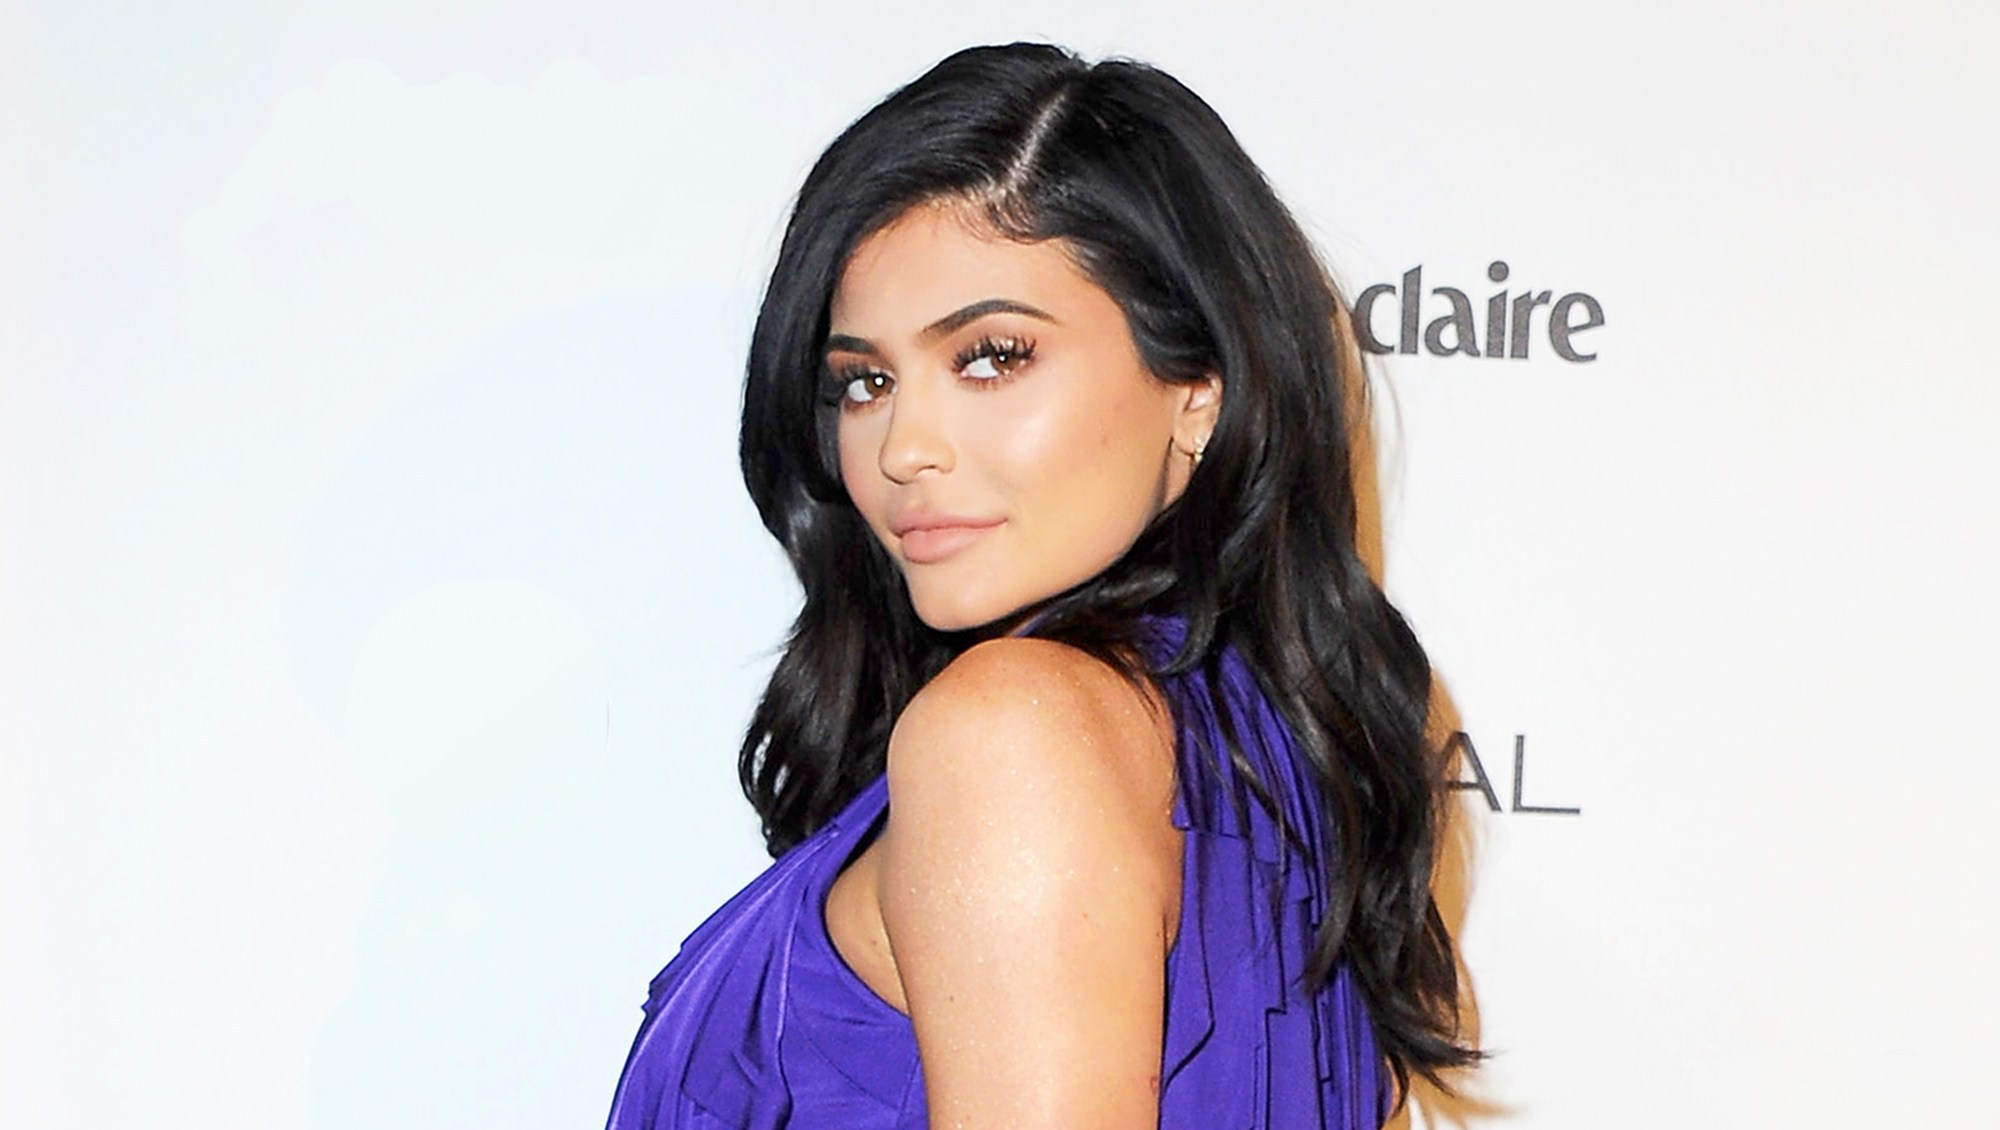 Kylie Jenner arrives at Marie Claire's Image Maker Awards 2017 at Catch LA on January 10, 2017 in West Hollywood, California.